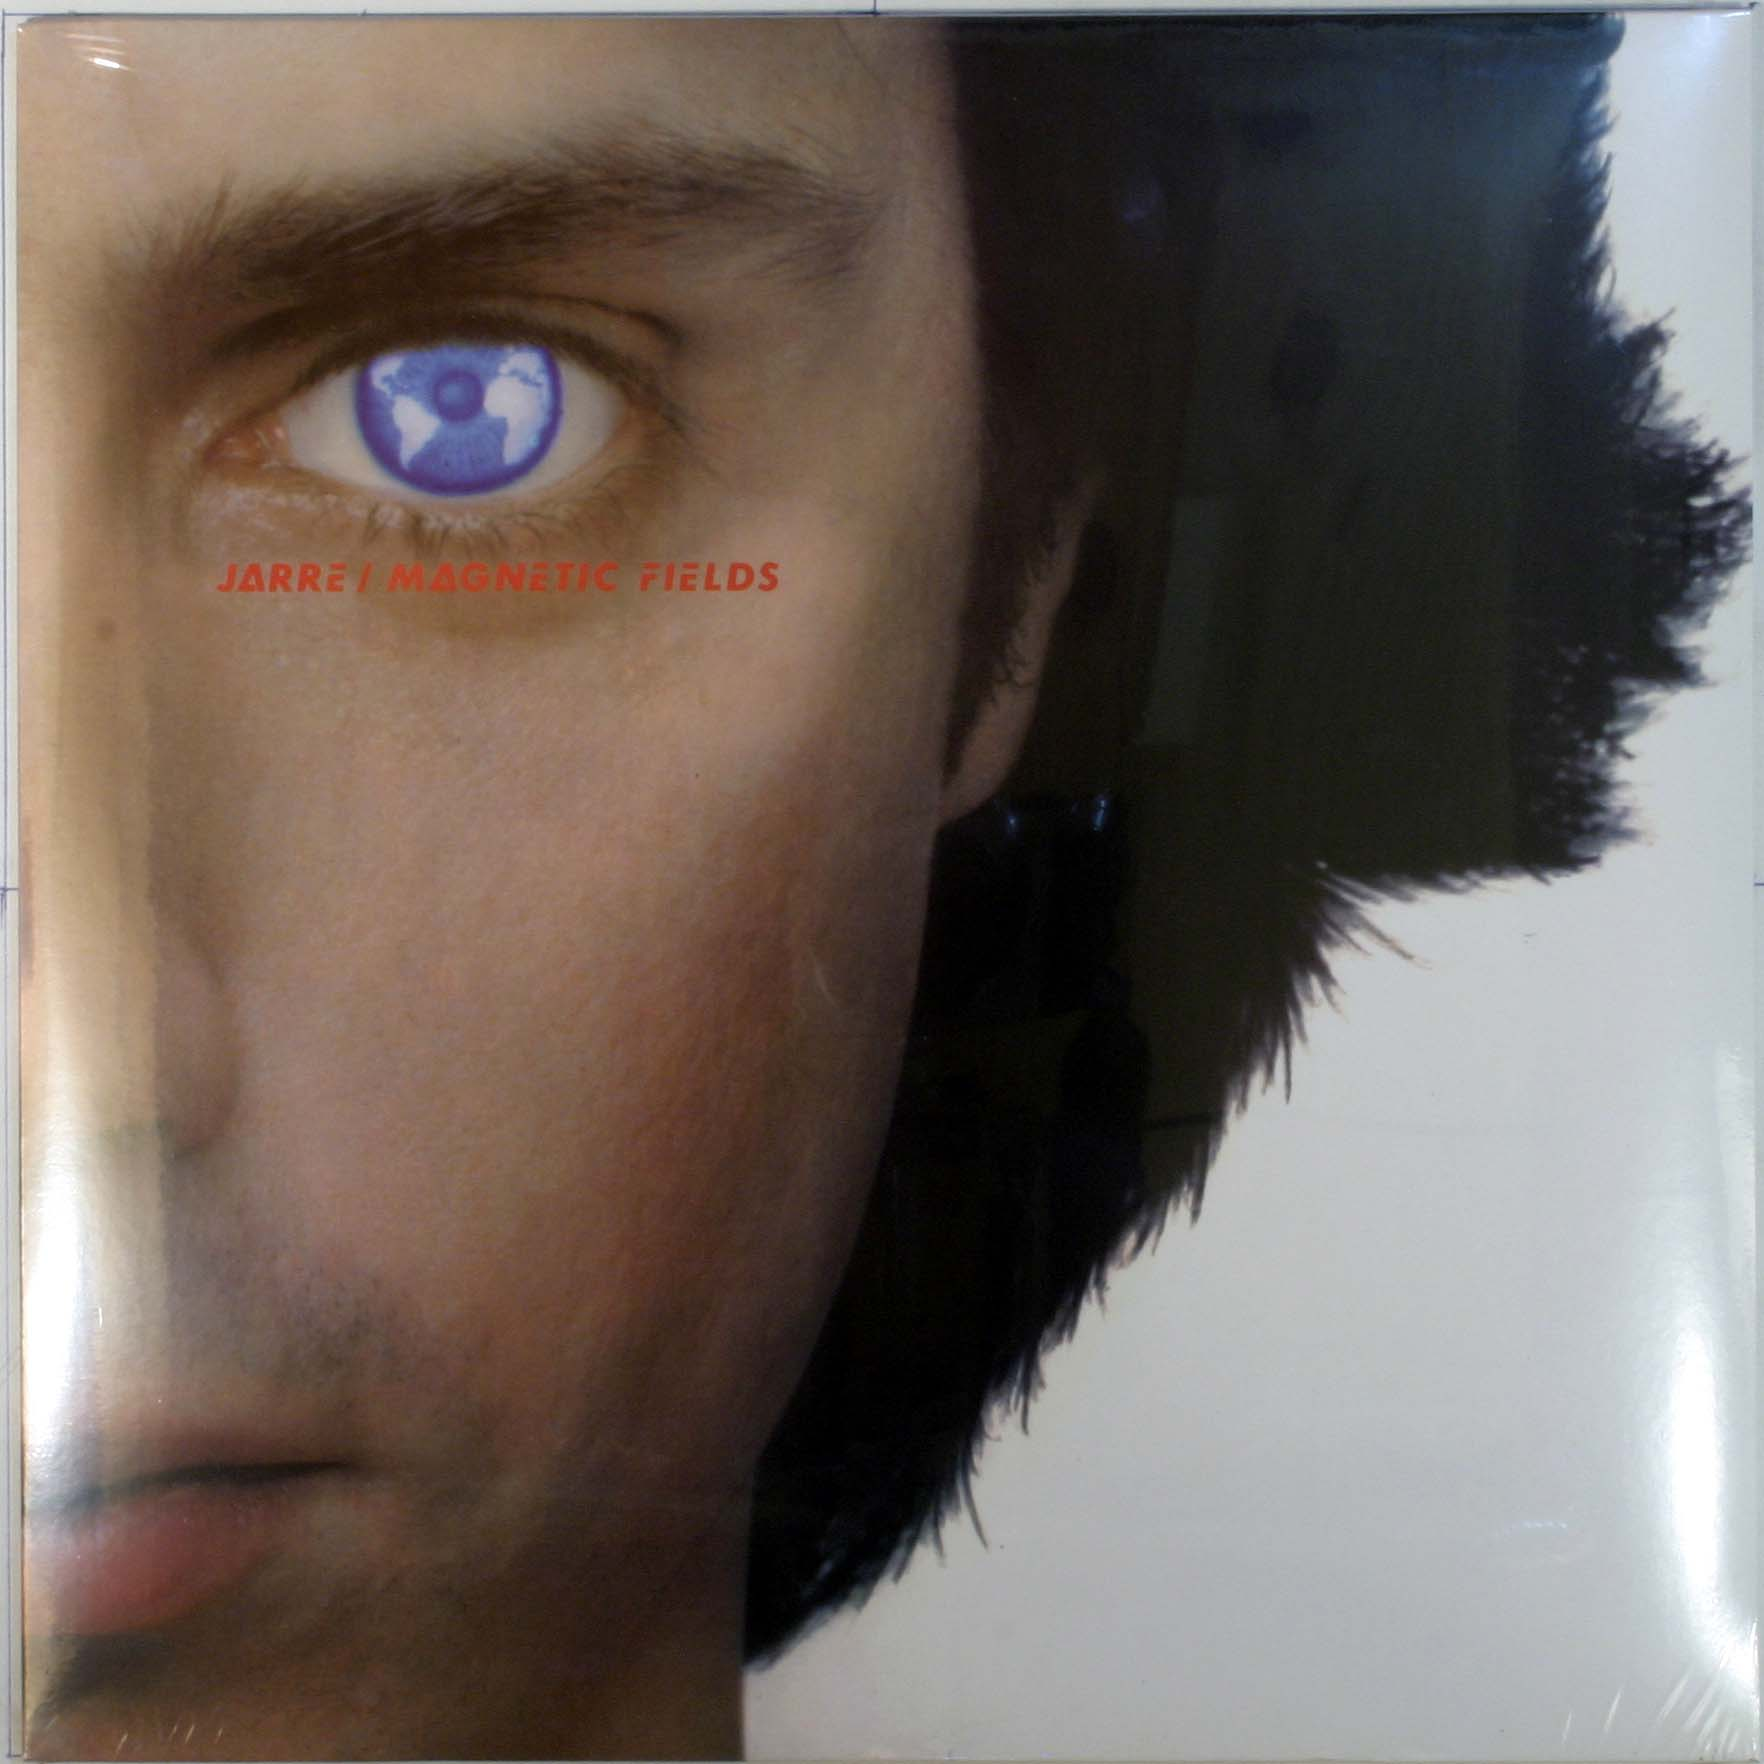 Jean-Michel Jarre - Magnetic Fields LP